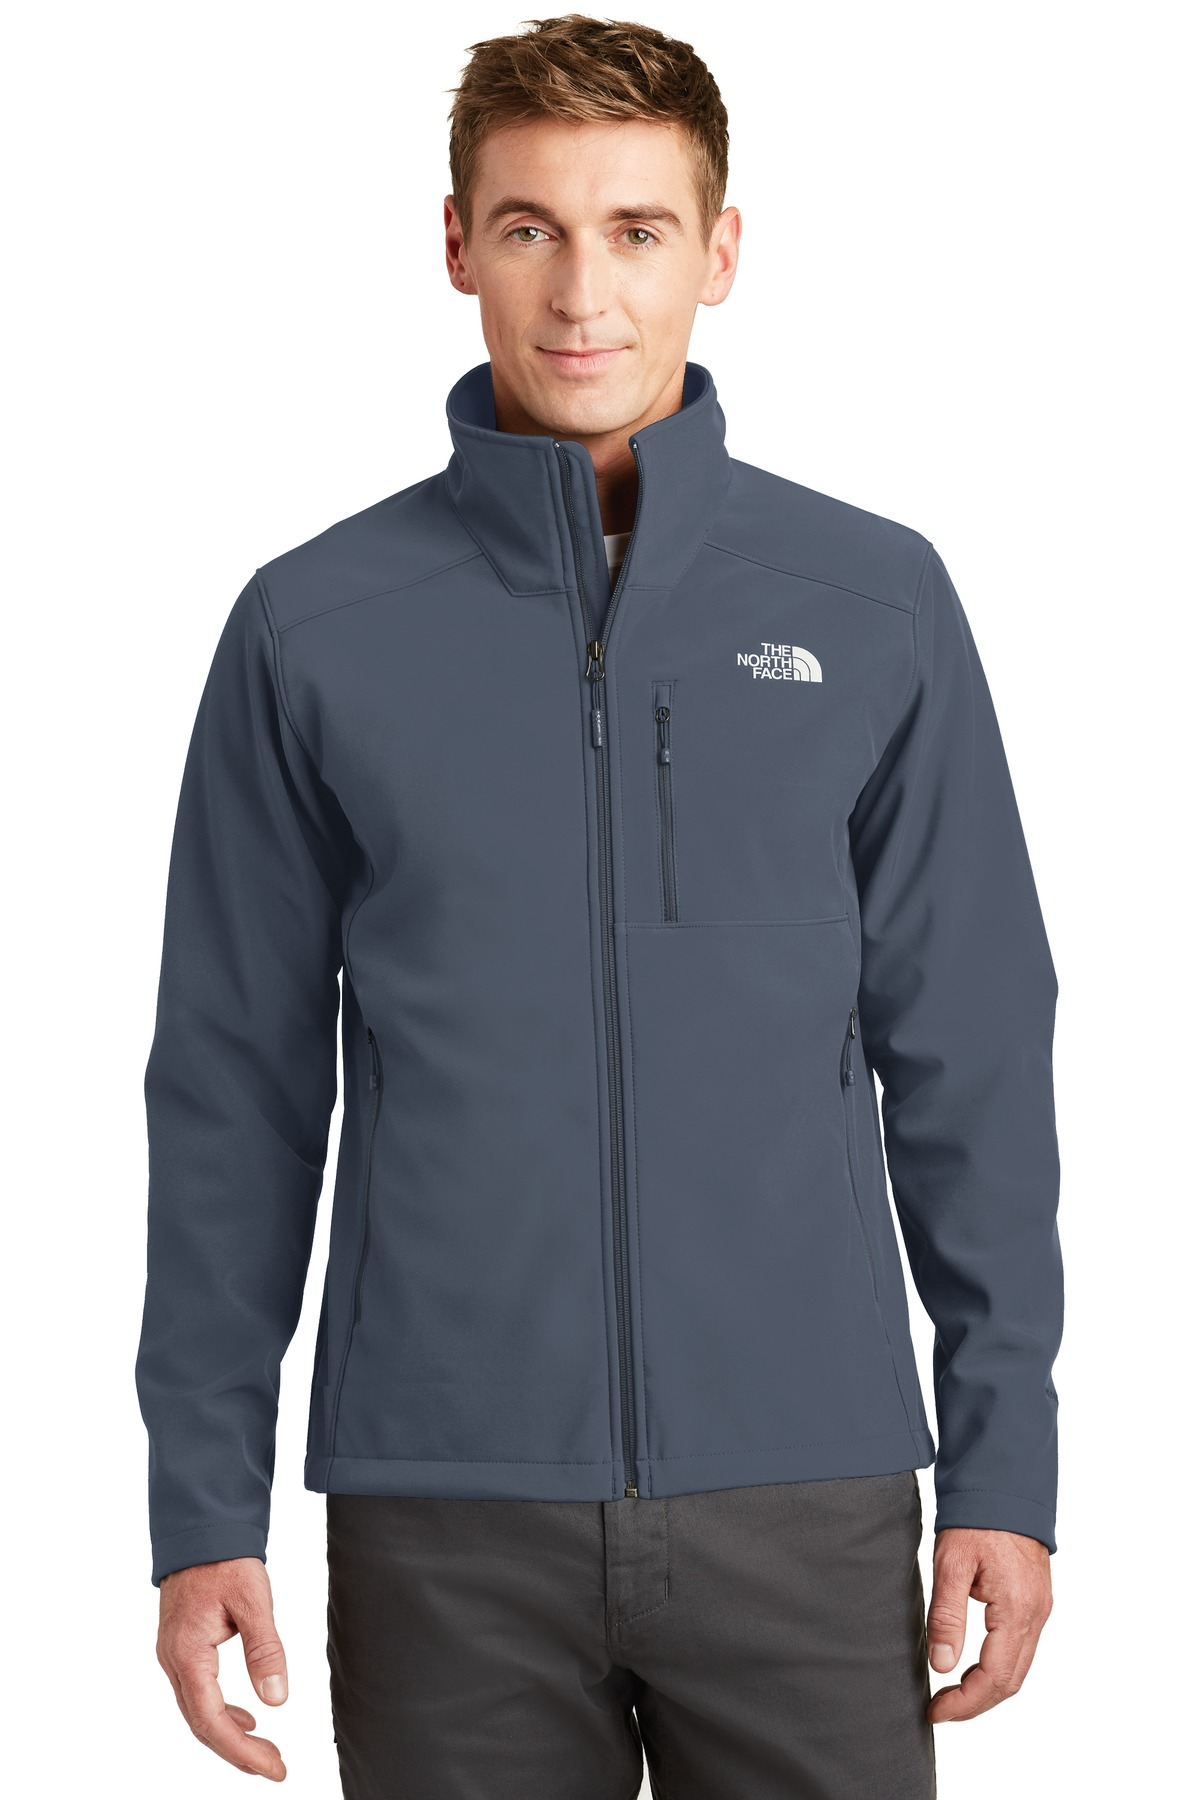 The North Face  ®  Apex Barrier Soft Shell Jacket. NF0A3LGT - Urban Navy